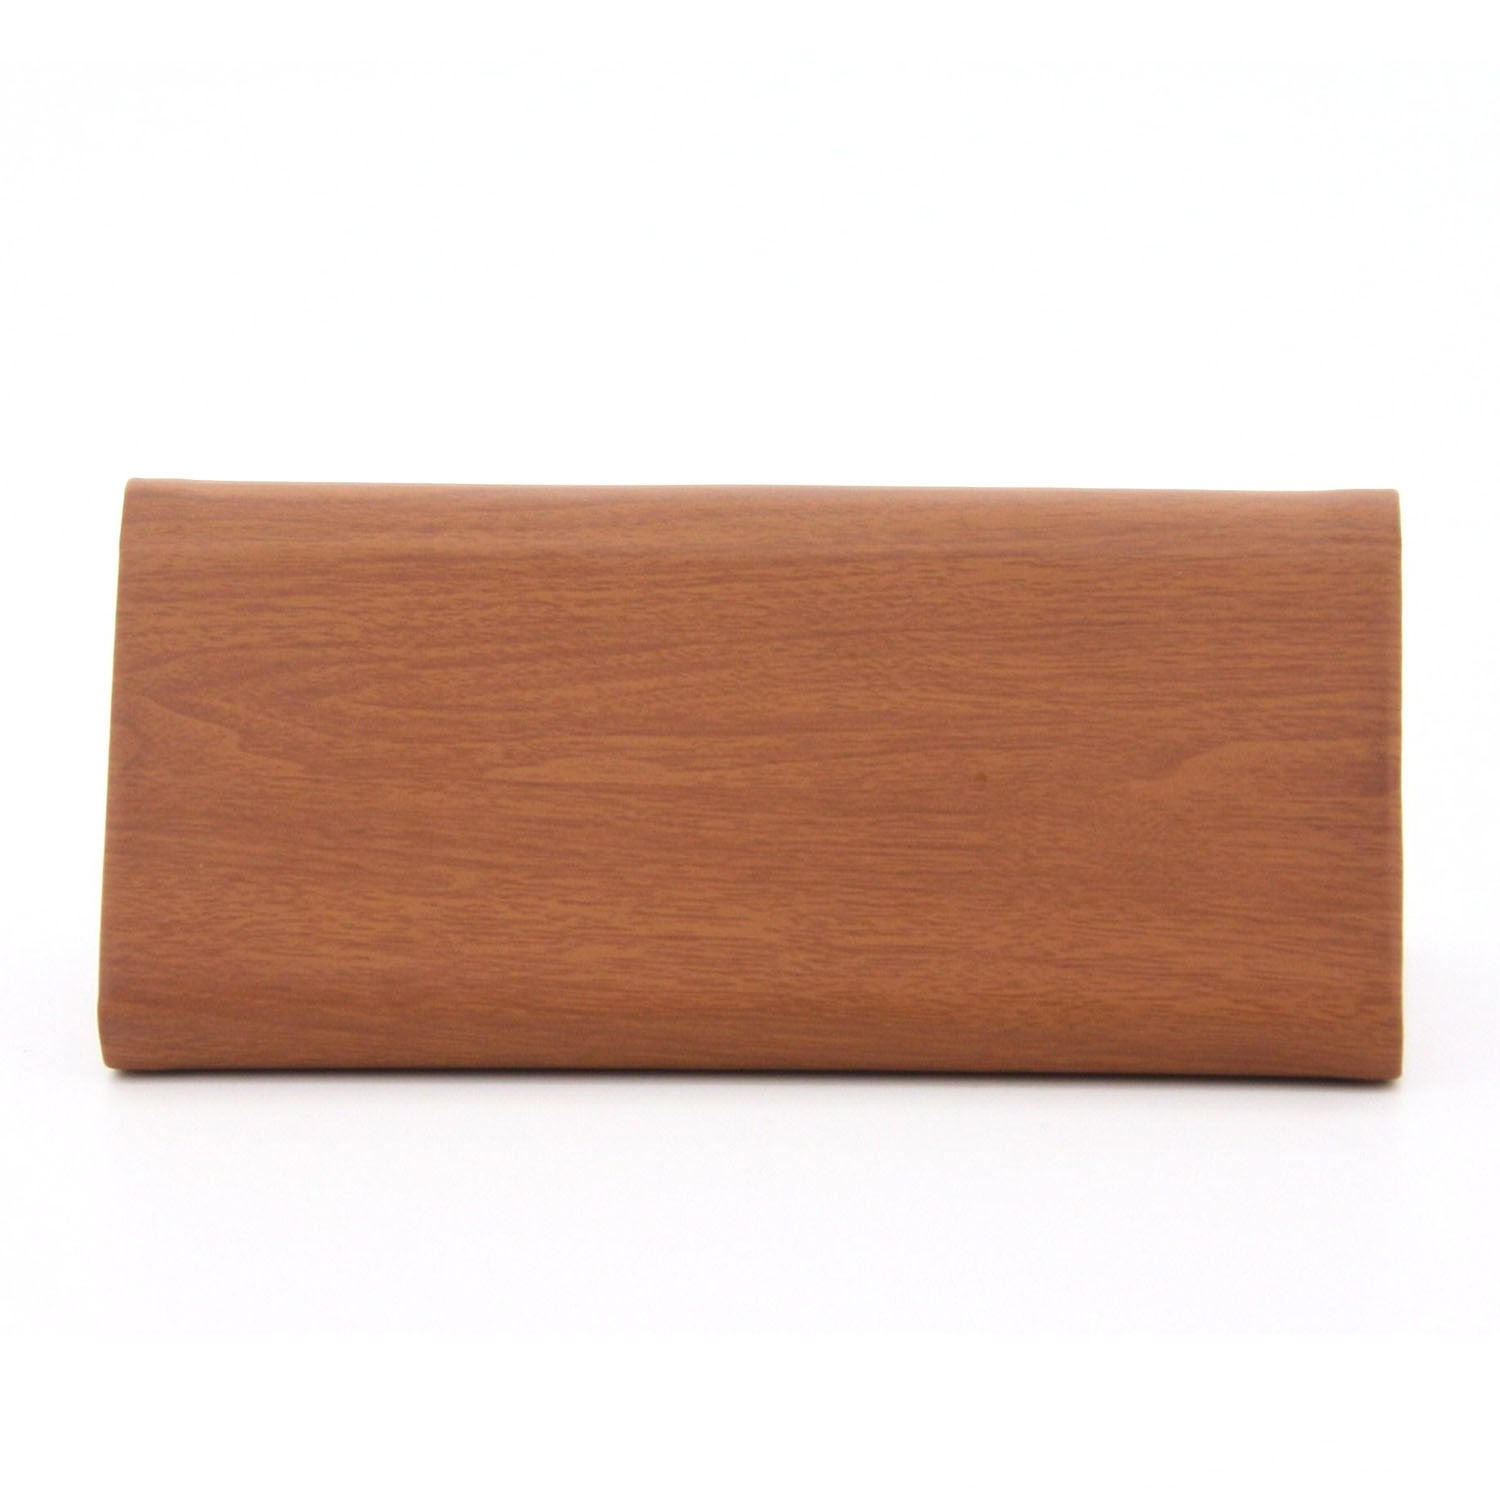 C16MR669BR Collapsible Eyeglass Case (Brown)